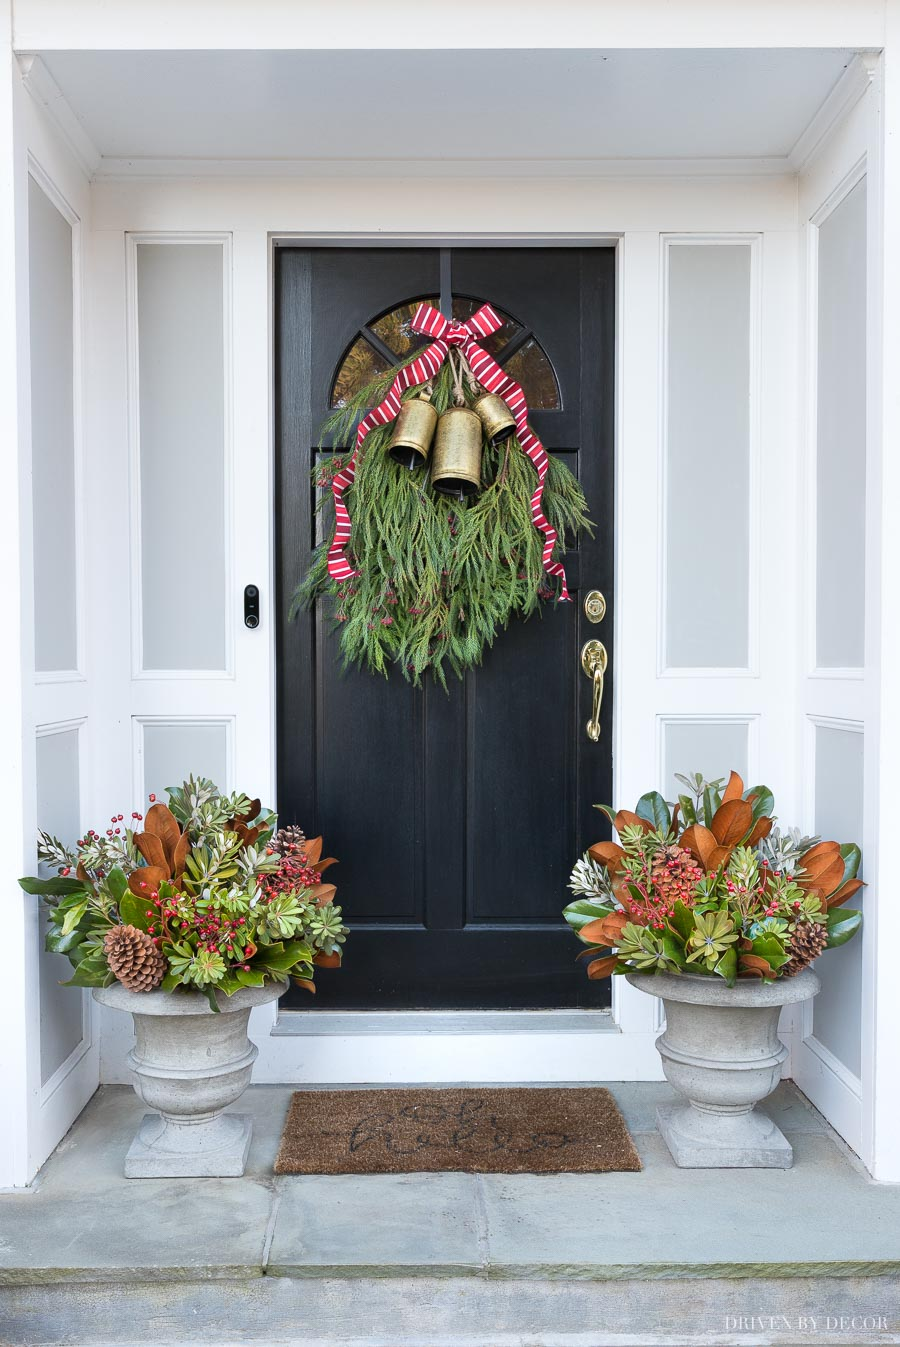 Our Christmas door swag and holiday planters - full tutorial included in post!